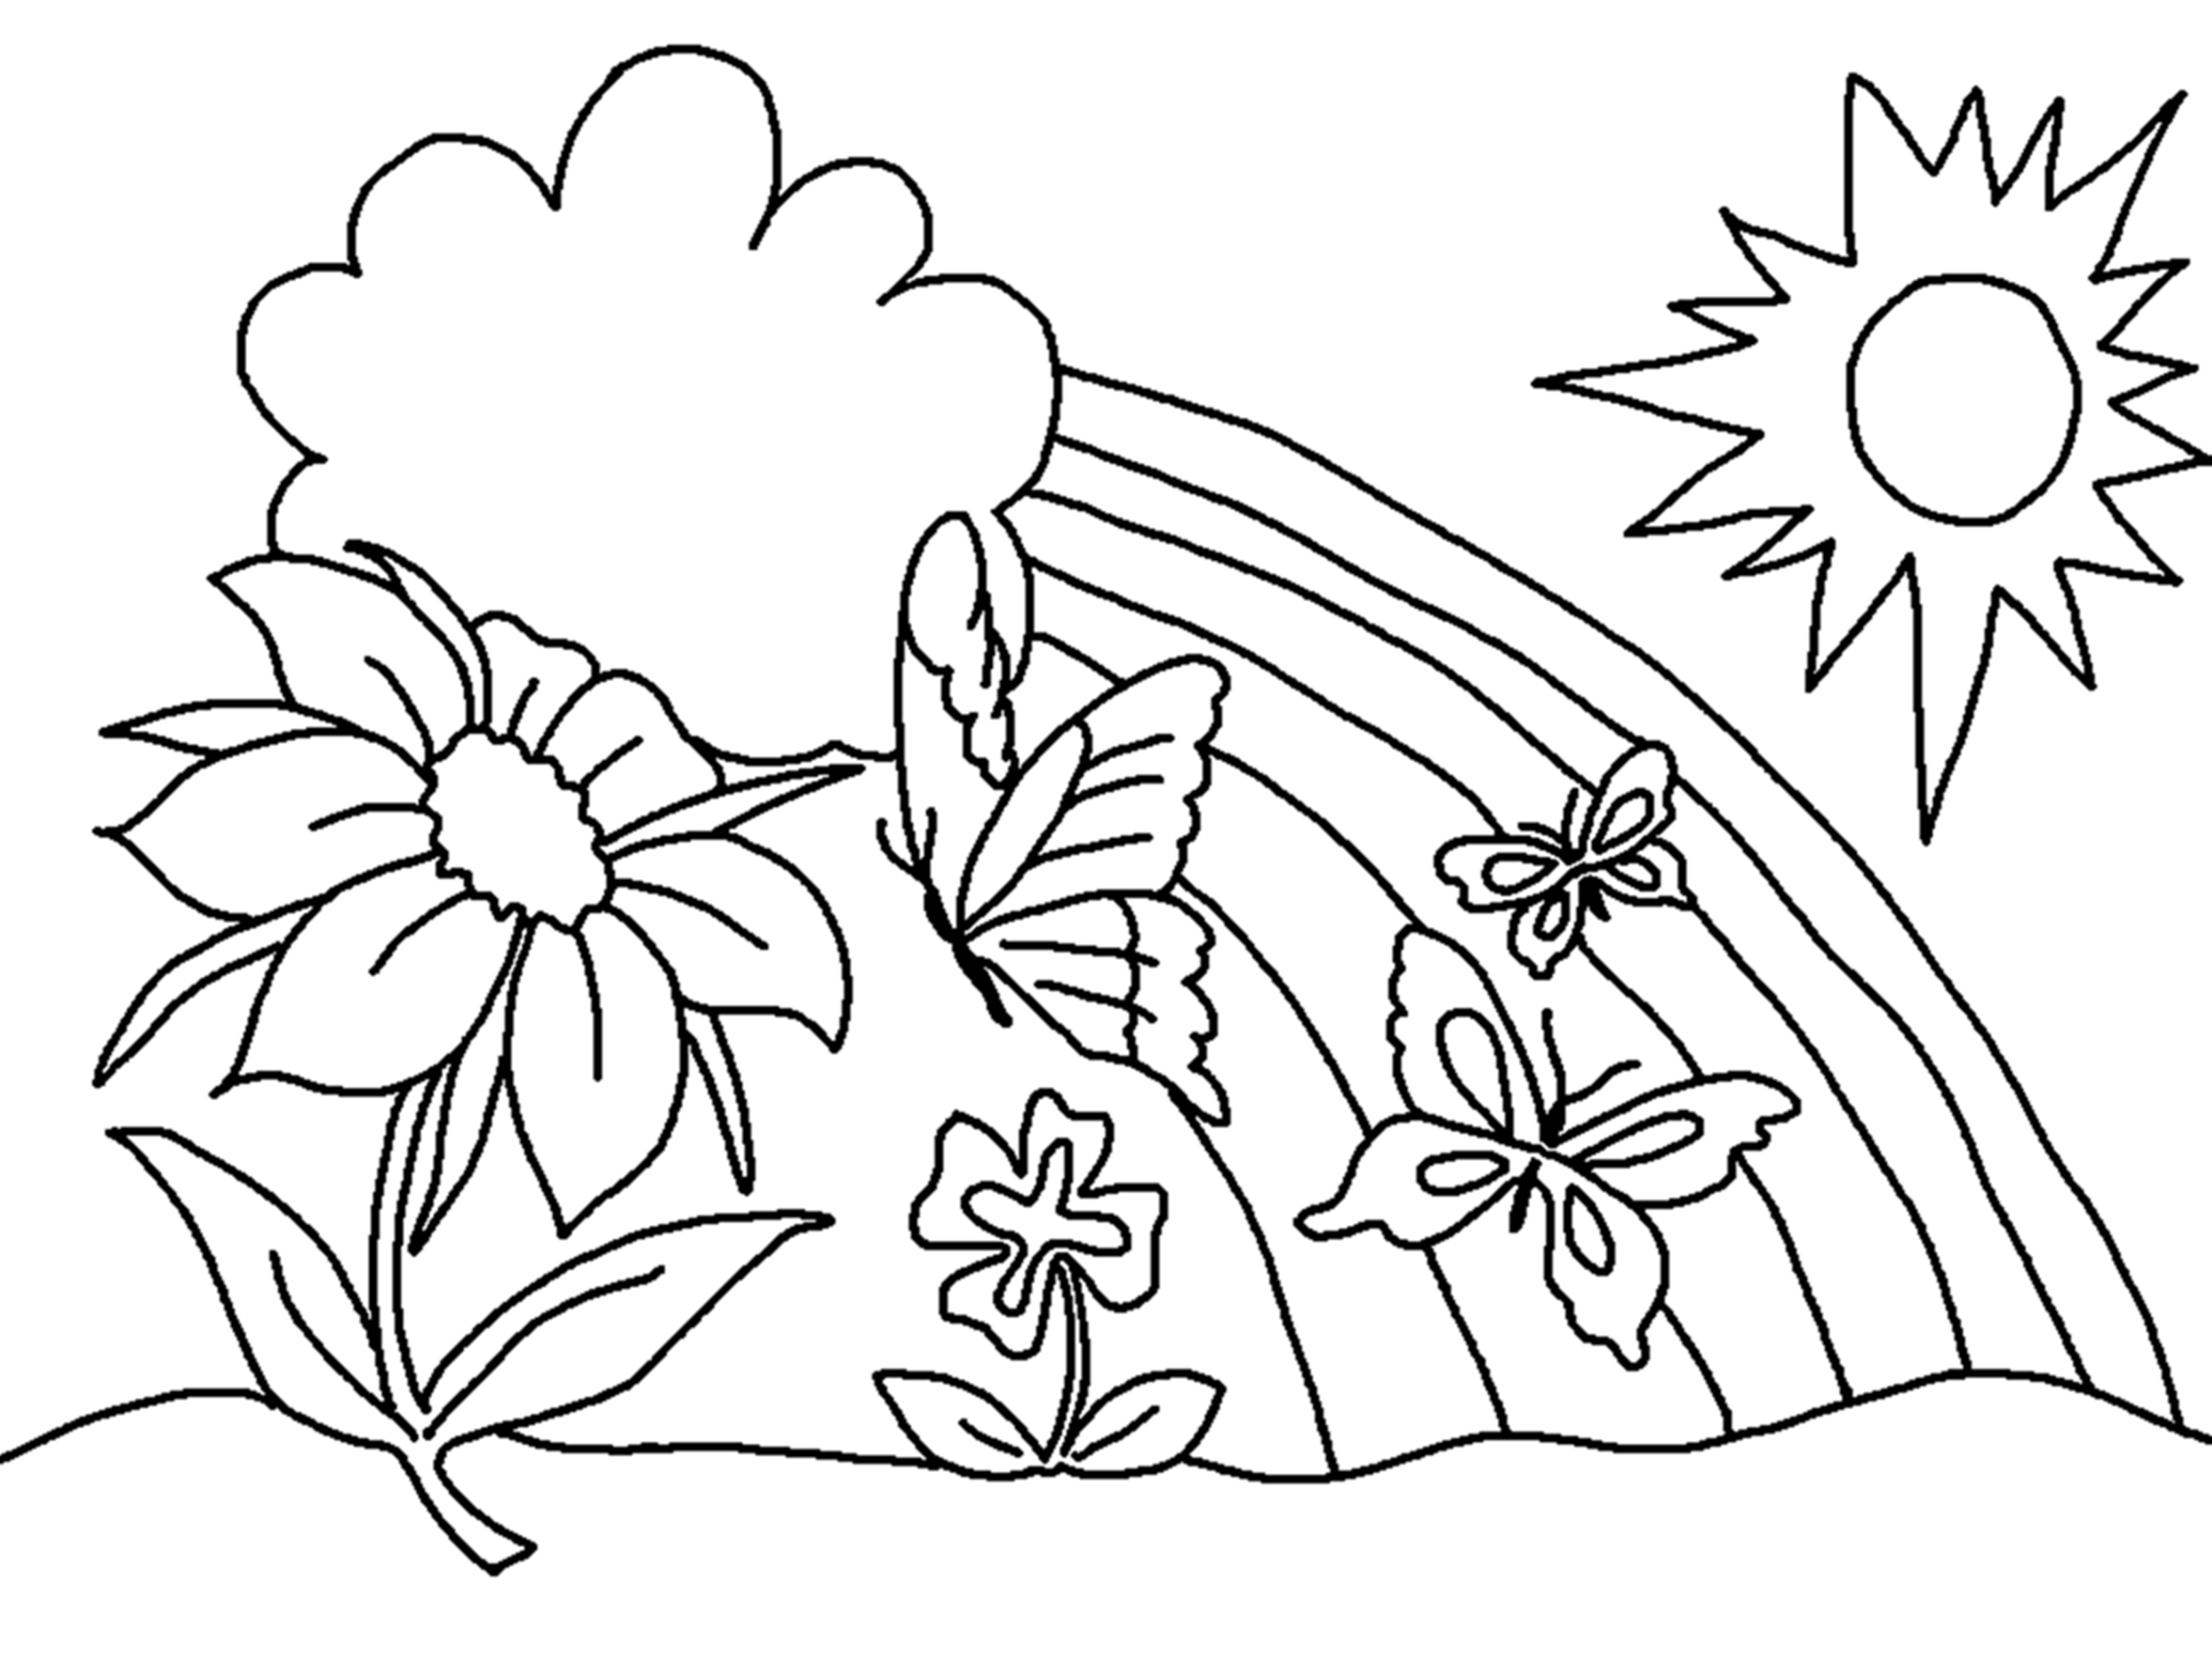 free coloring pages of flowers free printable flower coloring pages for kids best pages coloring free flowers of